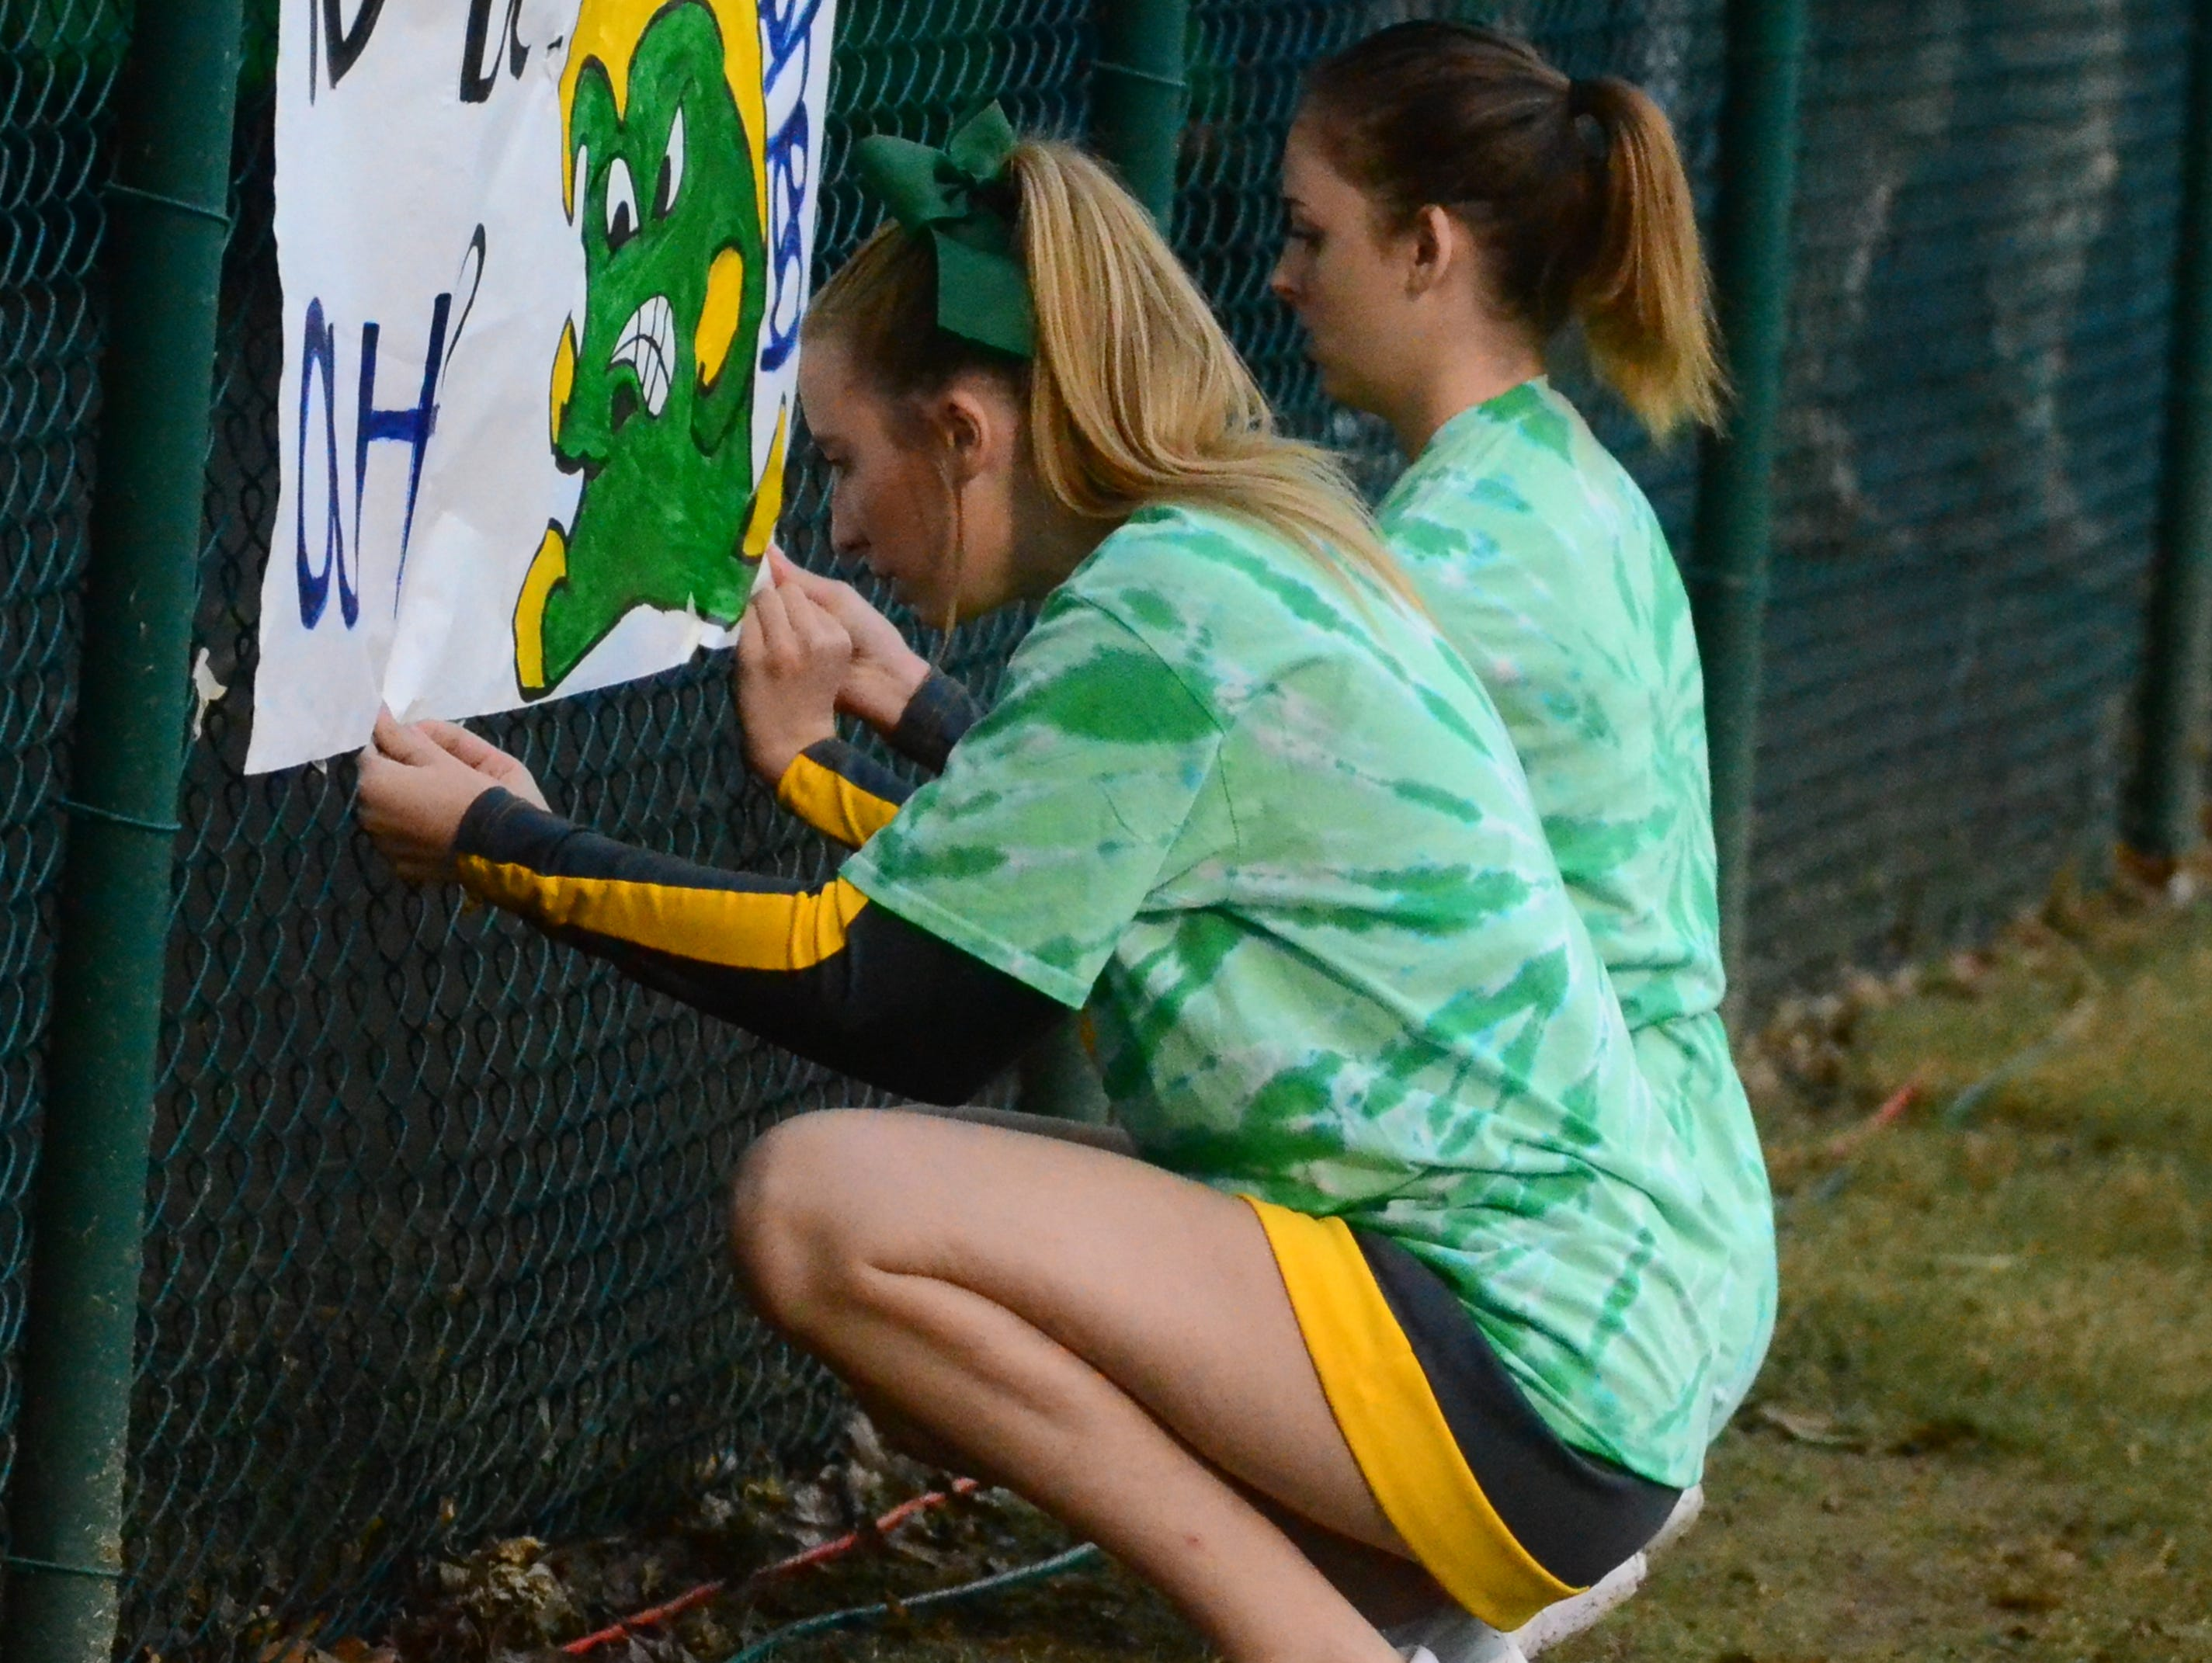 Gallatin High School cheerleaders attach a sign to the fence prior to their game at Gallatin on Friday, September 30, 2016.